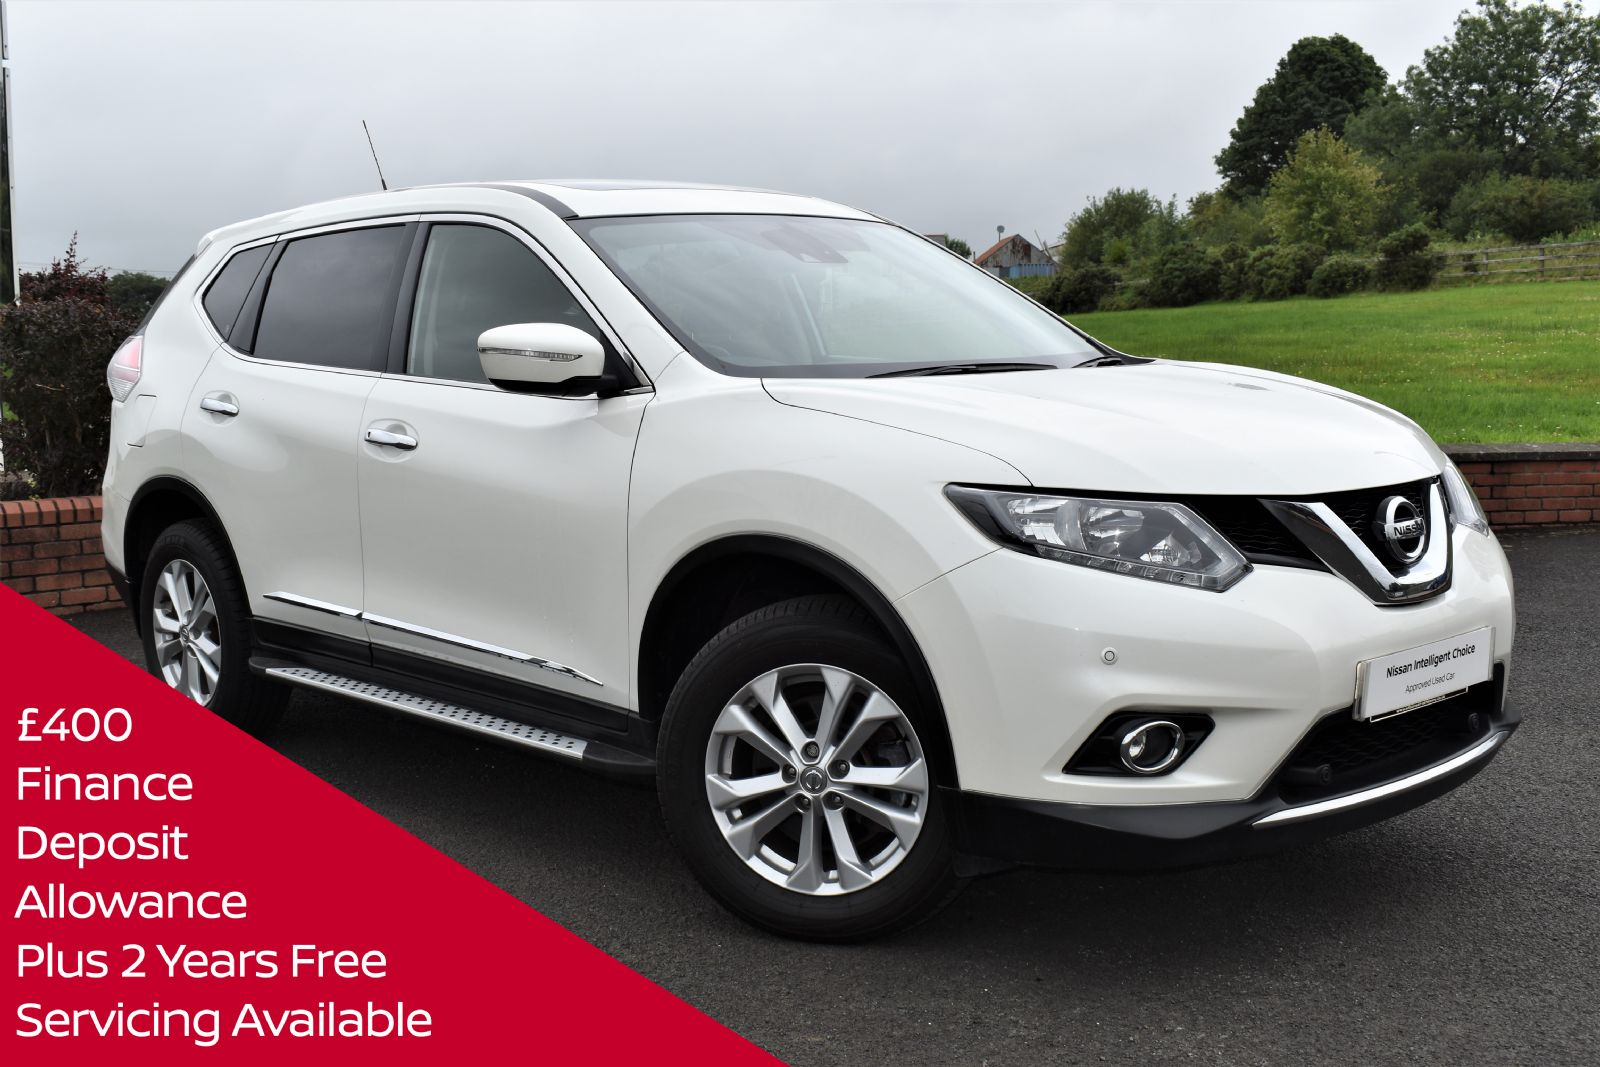 Nissan X-TRAIL ACENTA DCI SEVEN SEATER